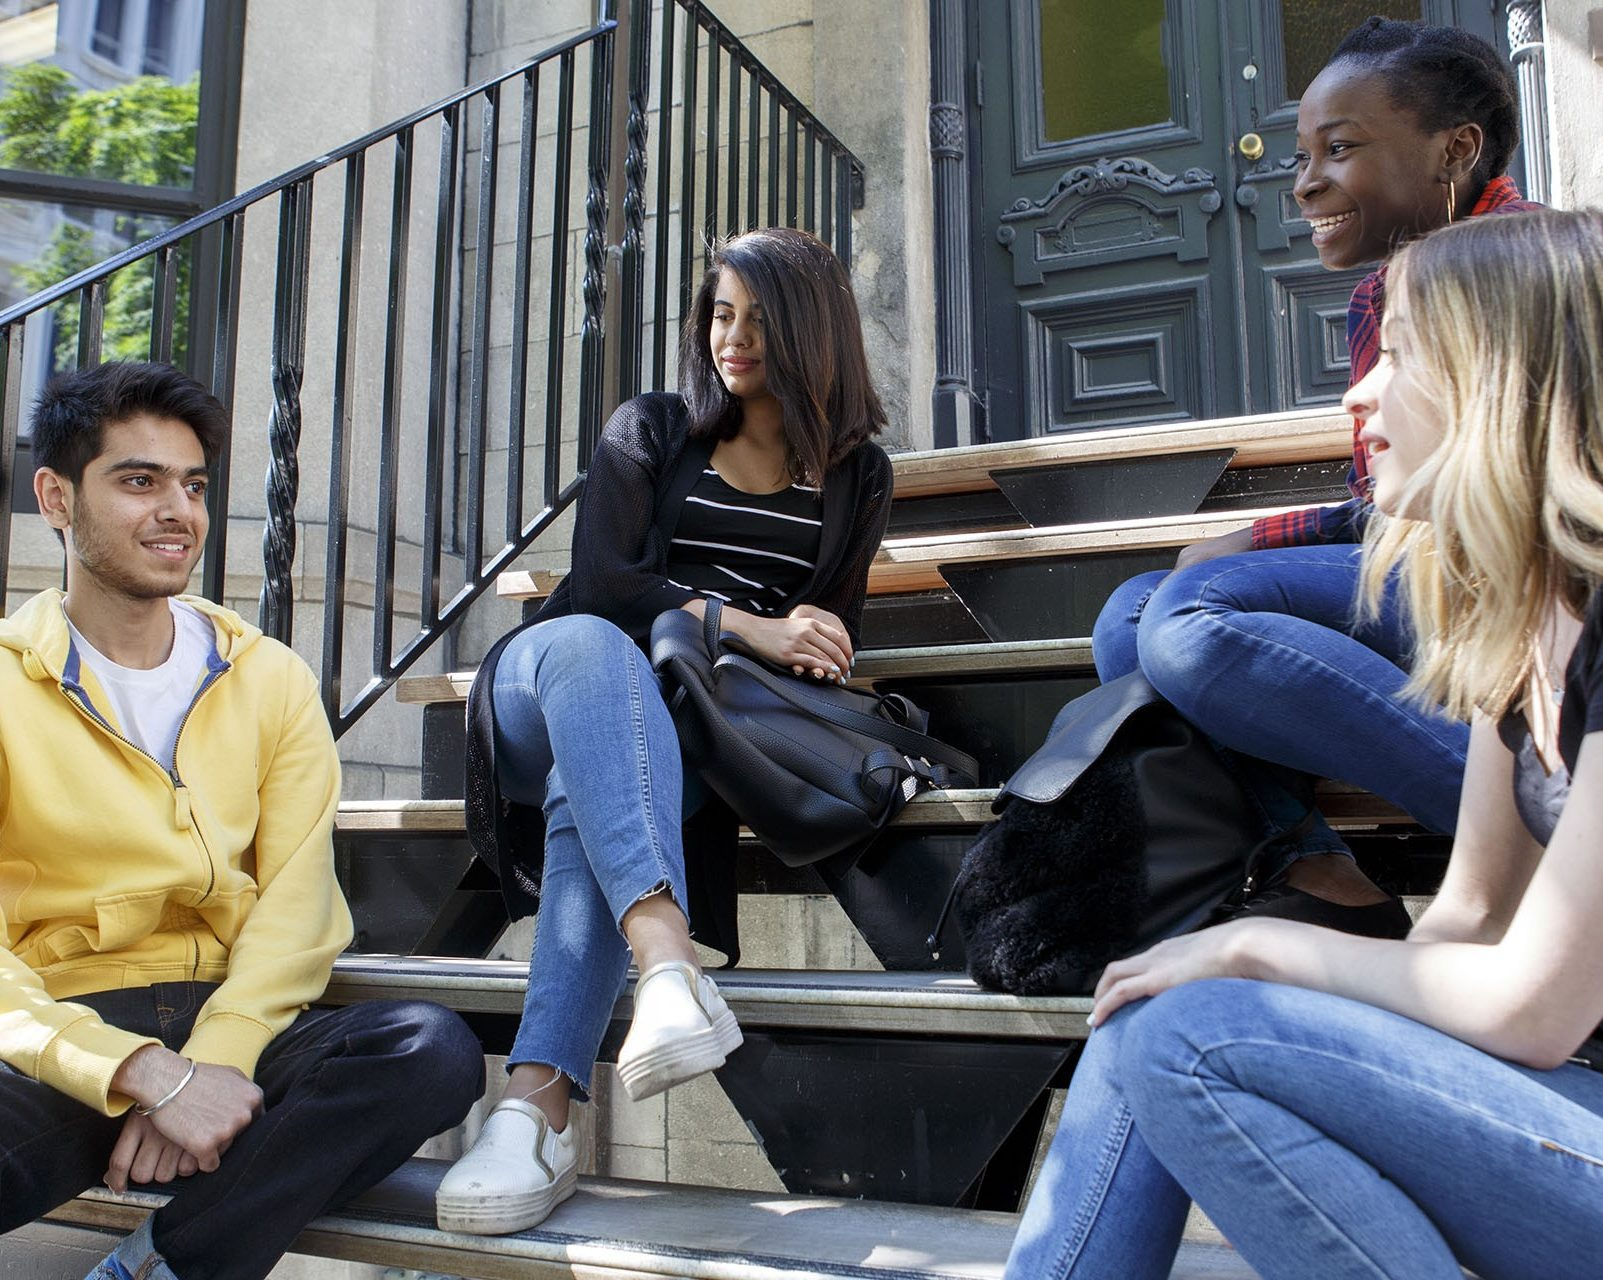 Students sitting on a stoop